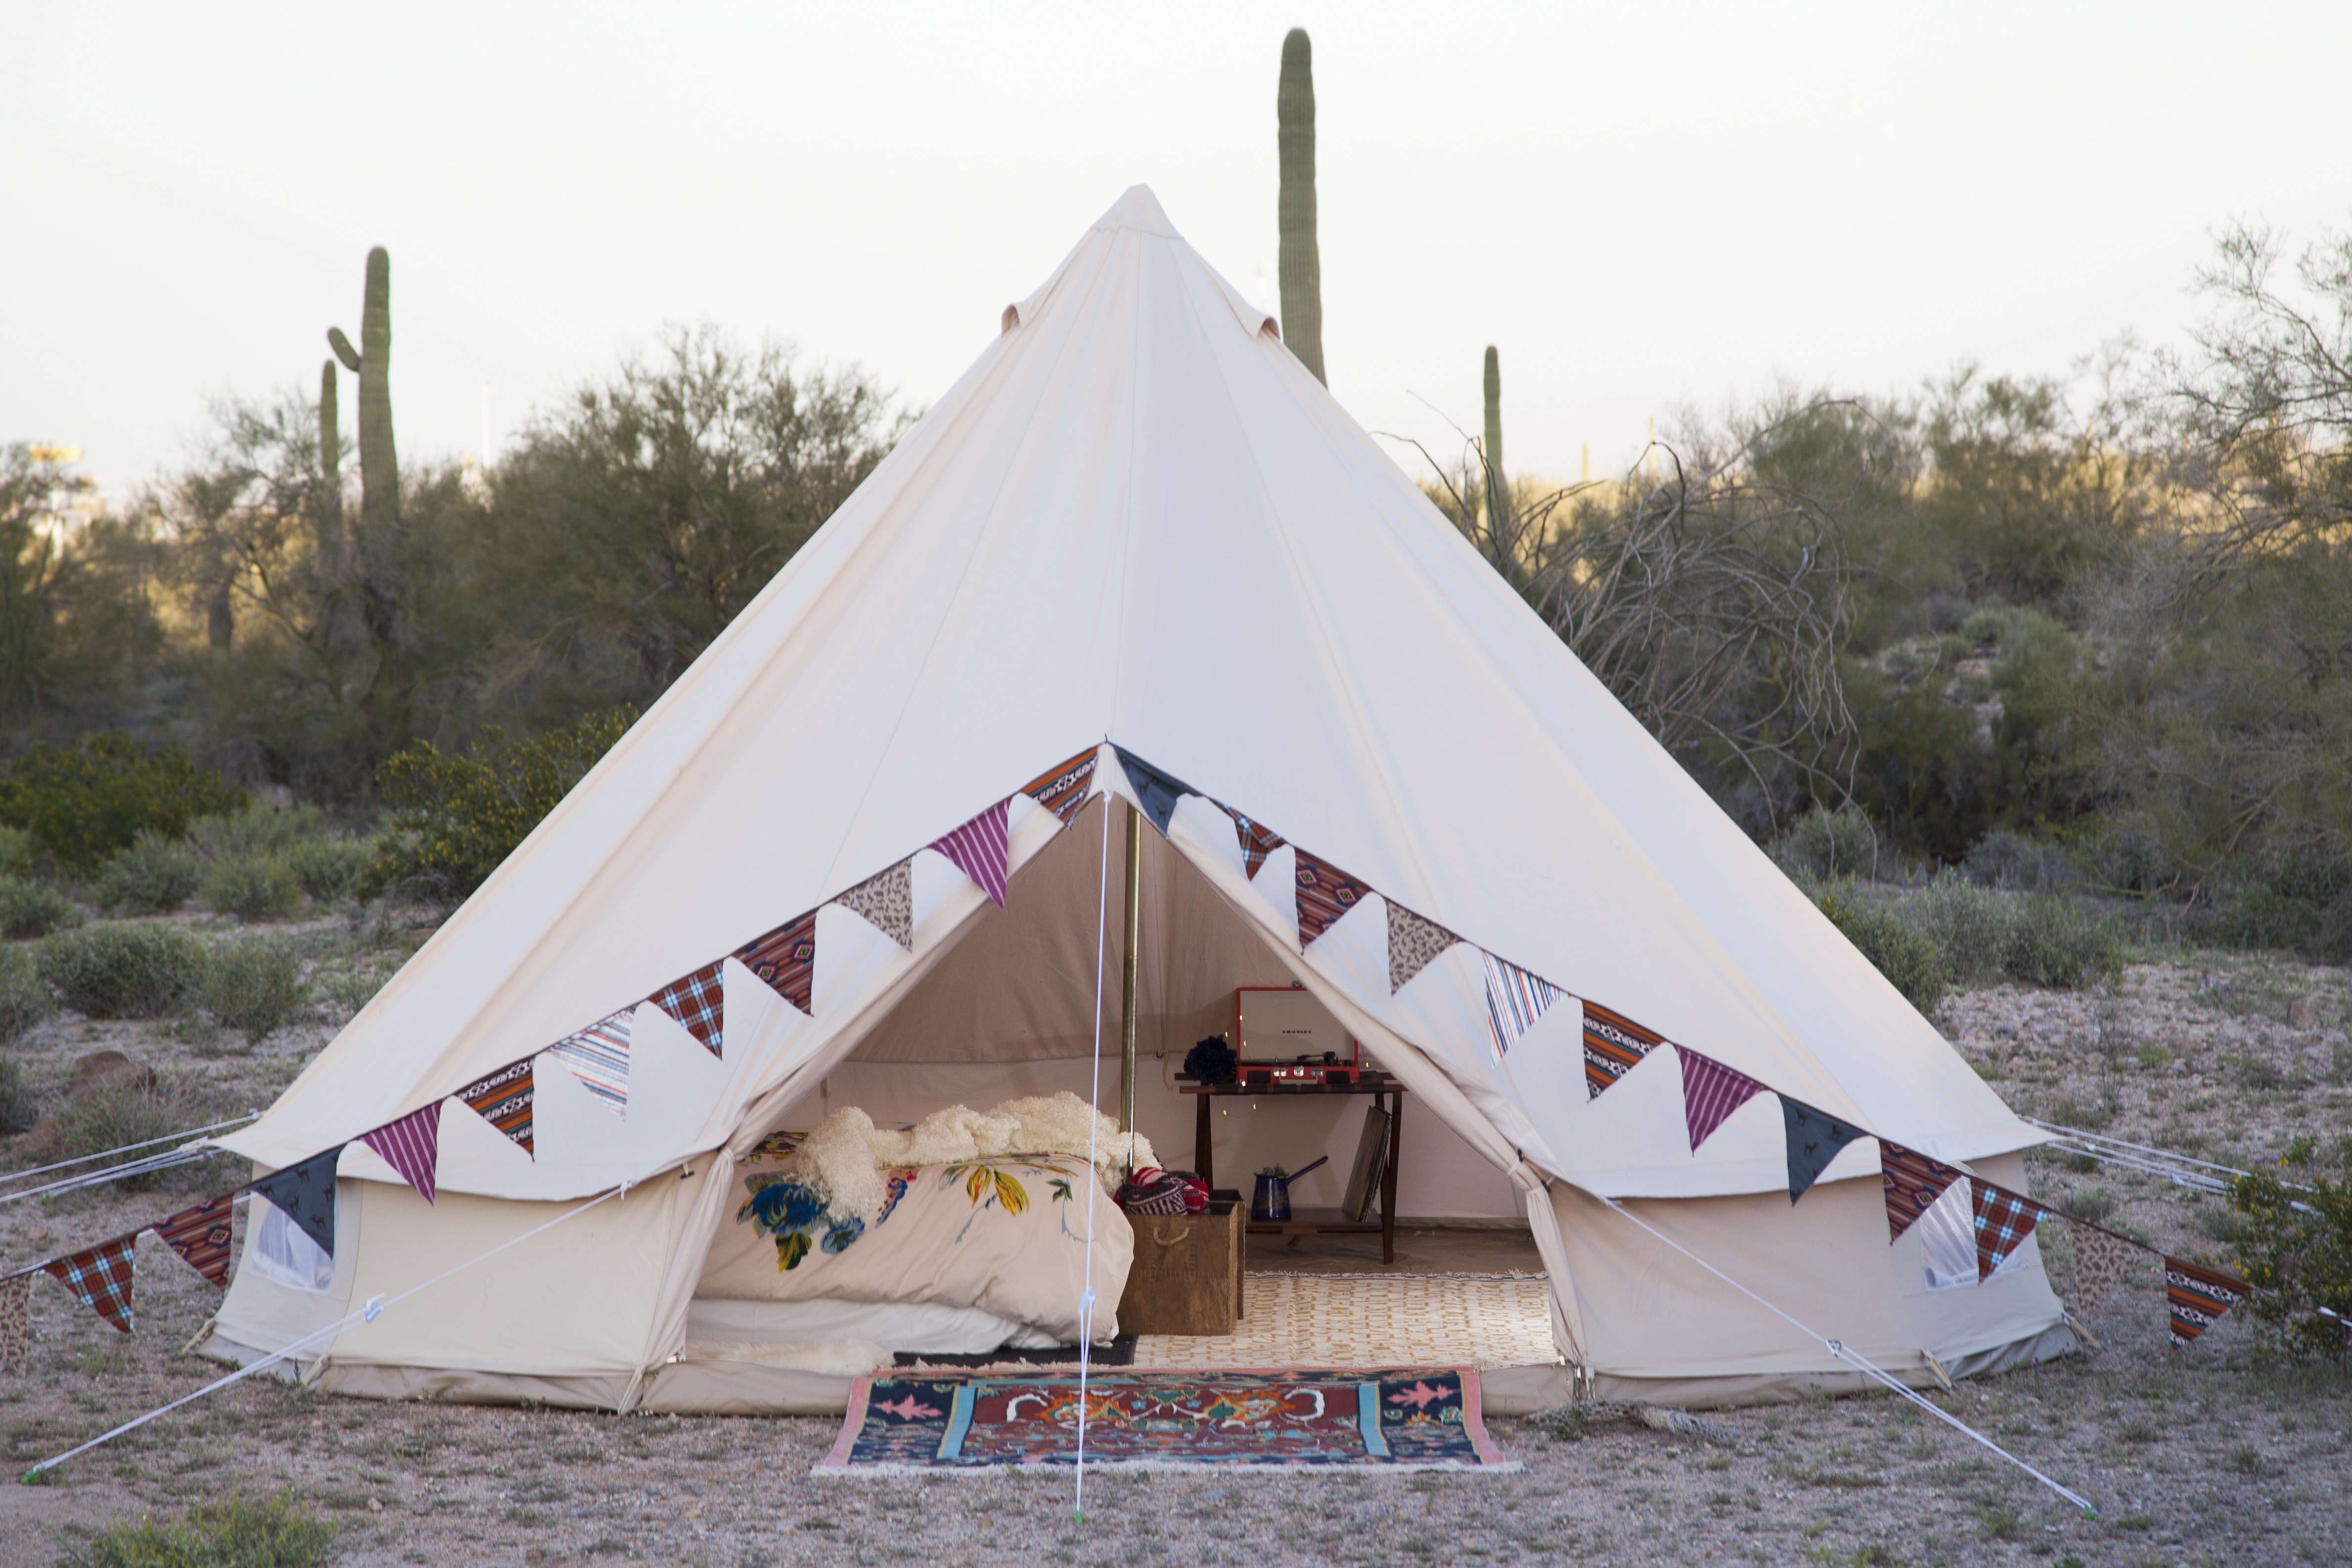 10 Great Glamping Tents & Accessories